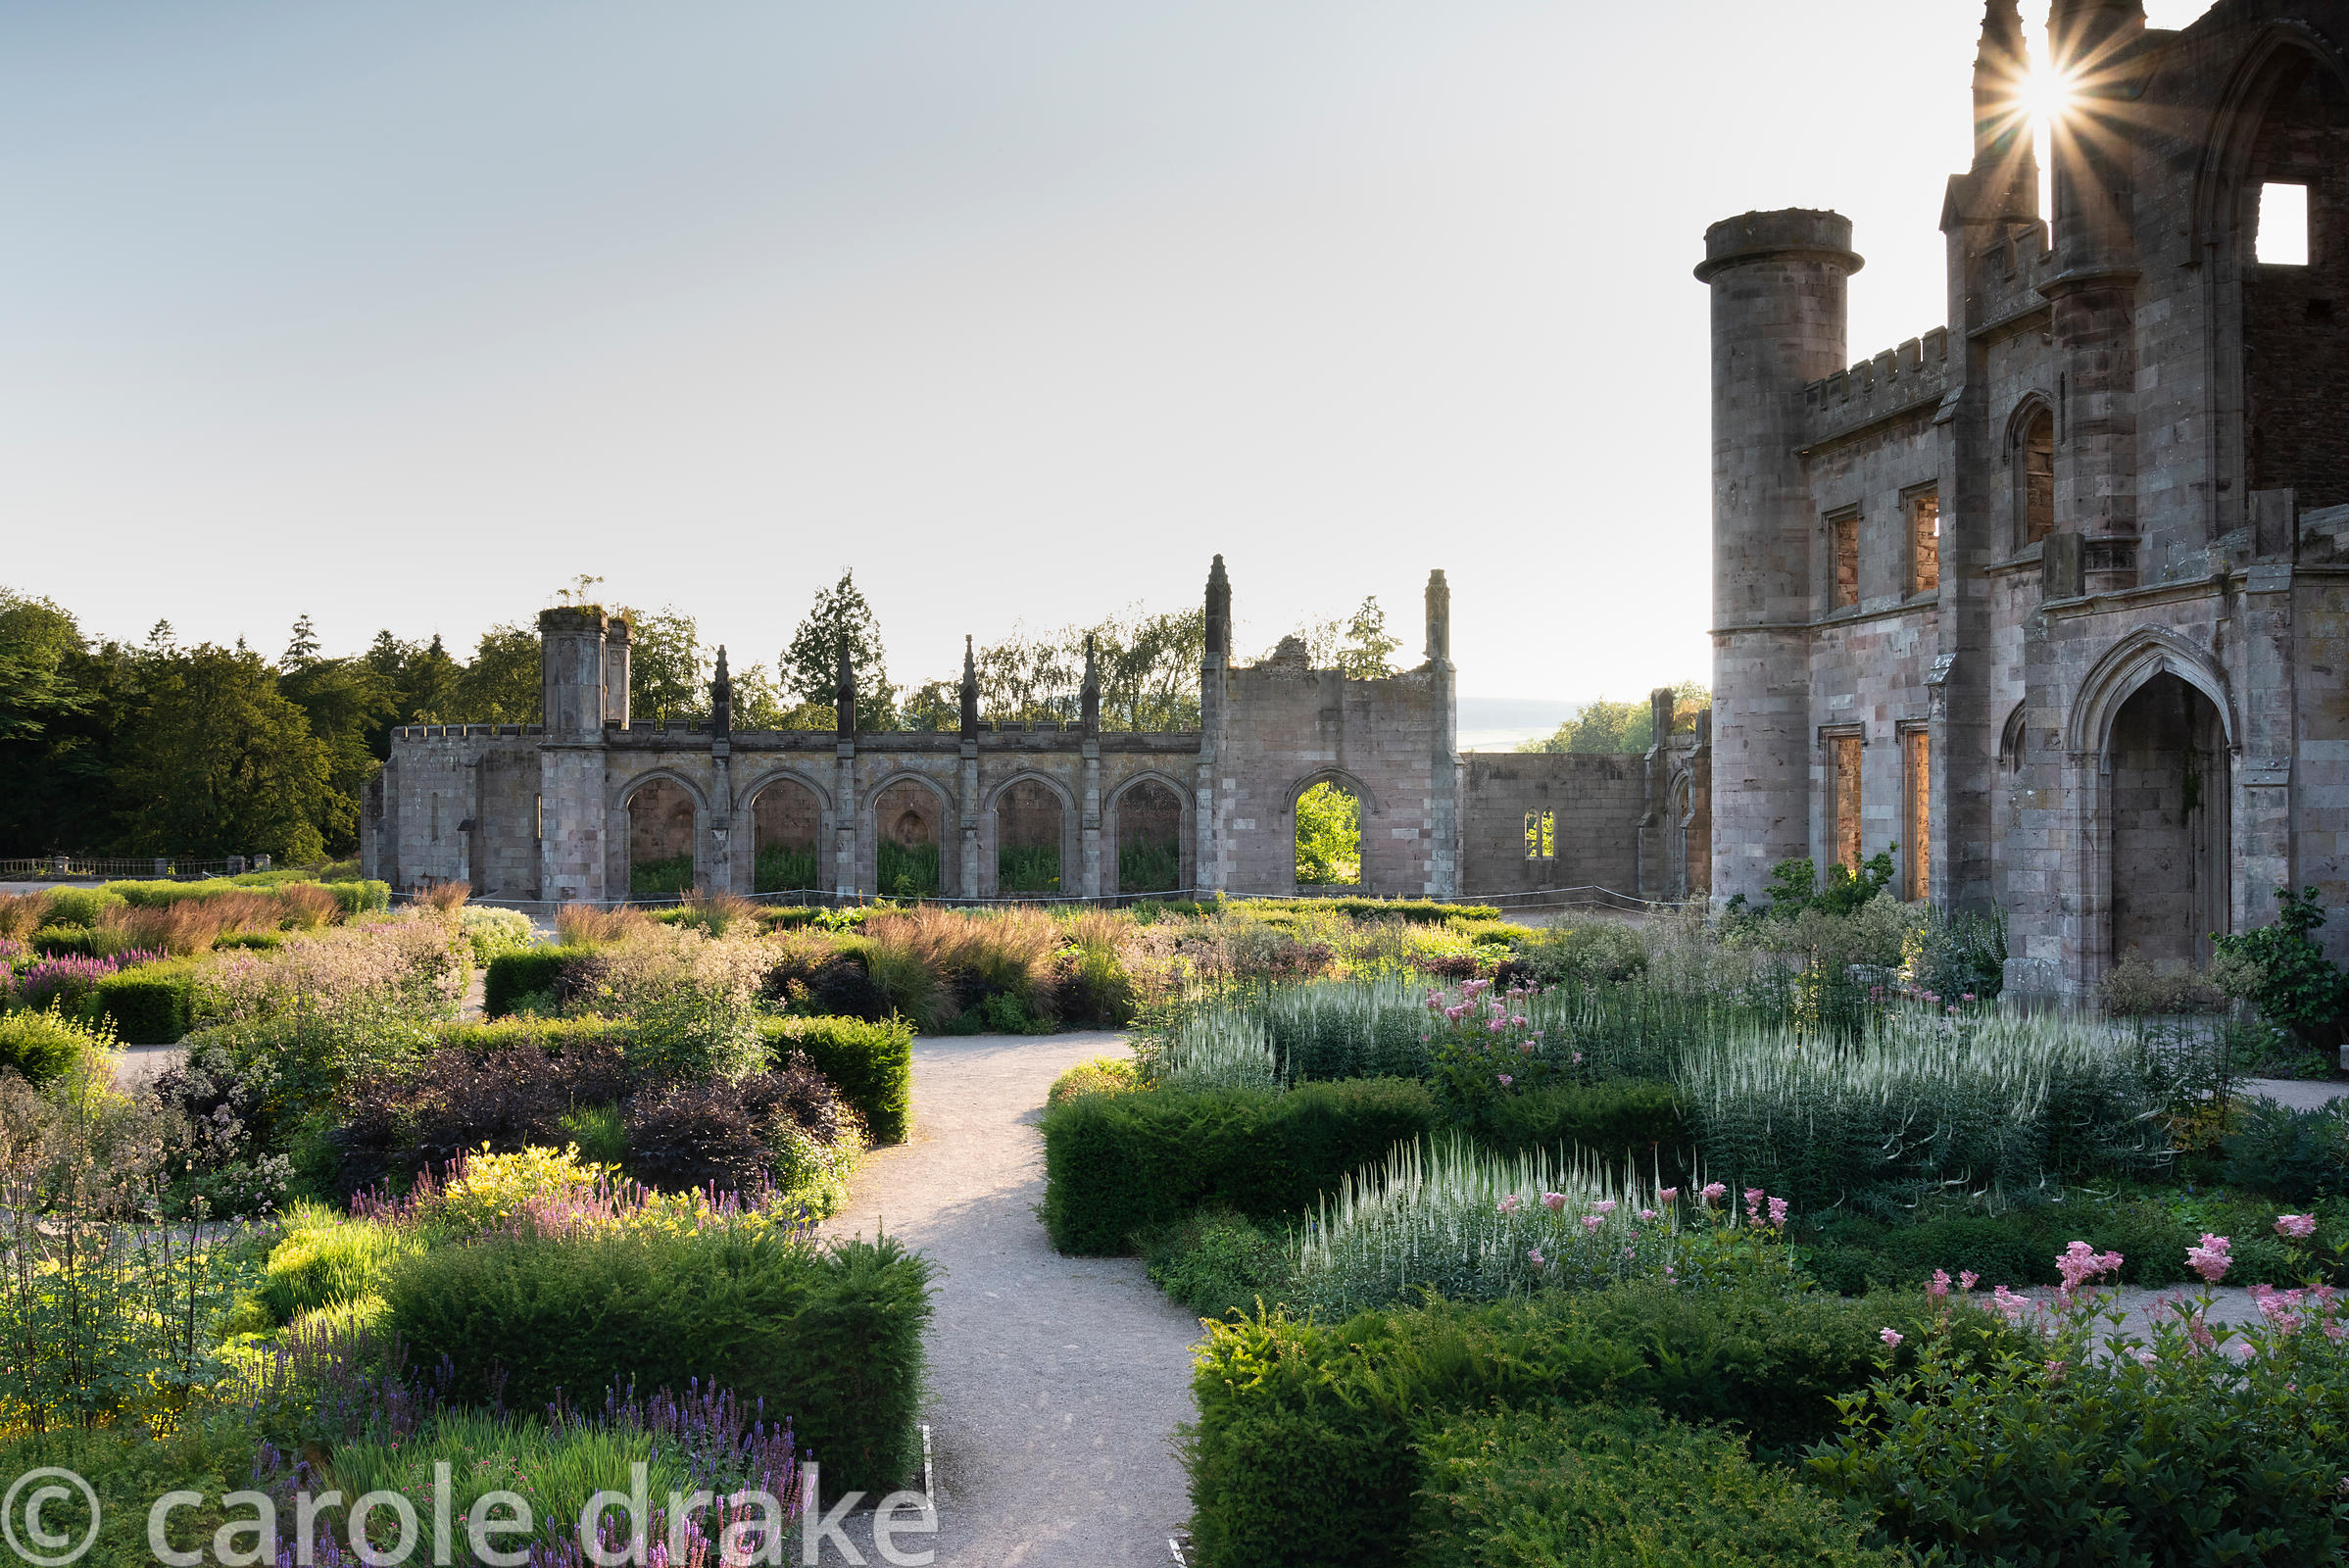 Parterre Garden designed by Dan Pearson at Lowther Castle, Penrith, Cumbria in July with low blocks of yew framing herbaceous...